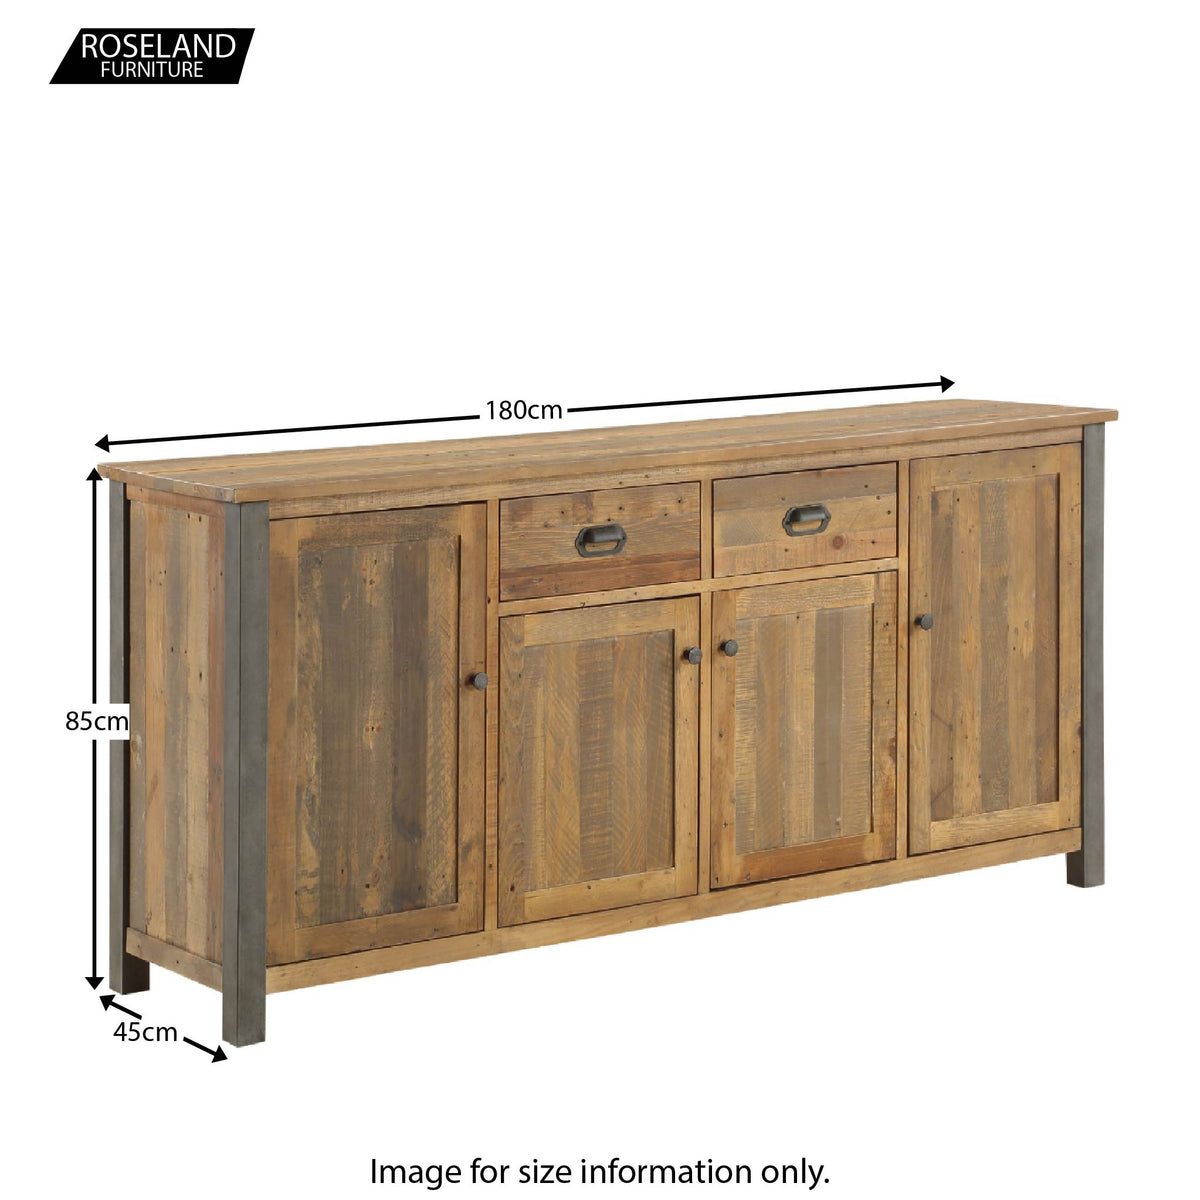 Dimensions of Urban Elegance Reclaimed Wood Extra Large Sideboard